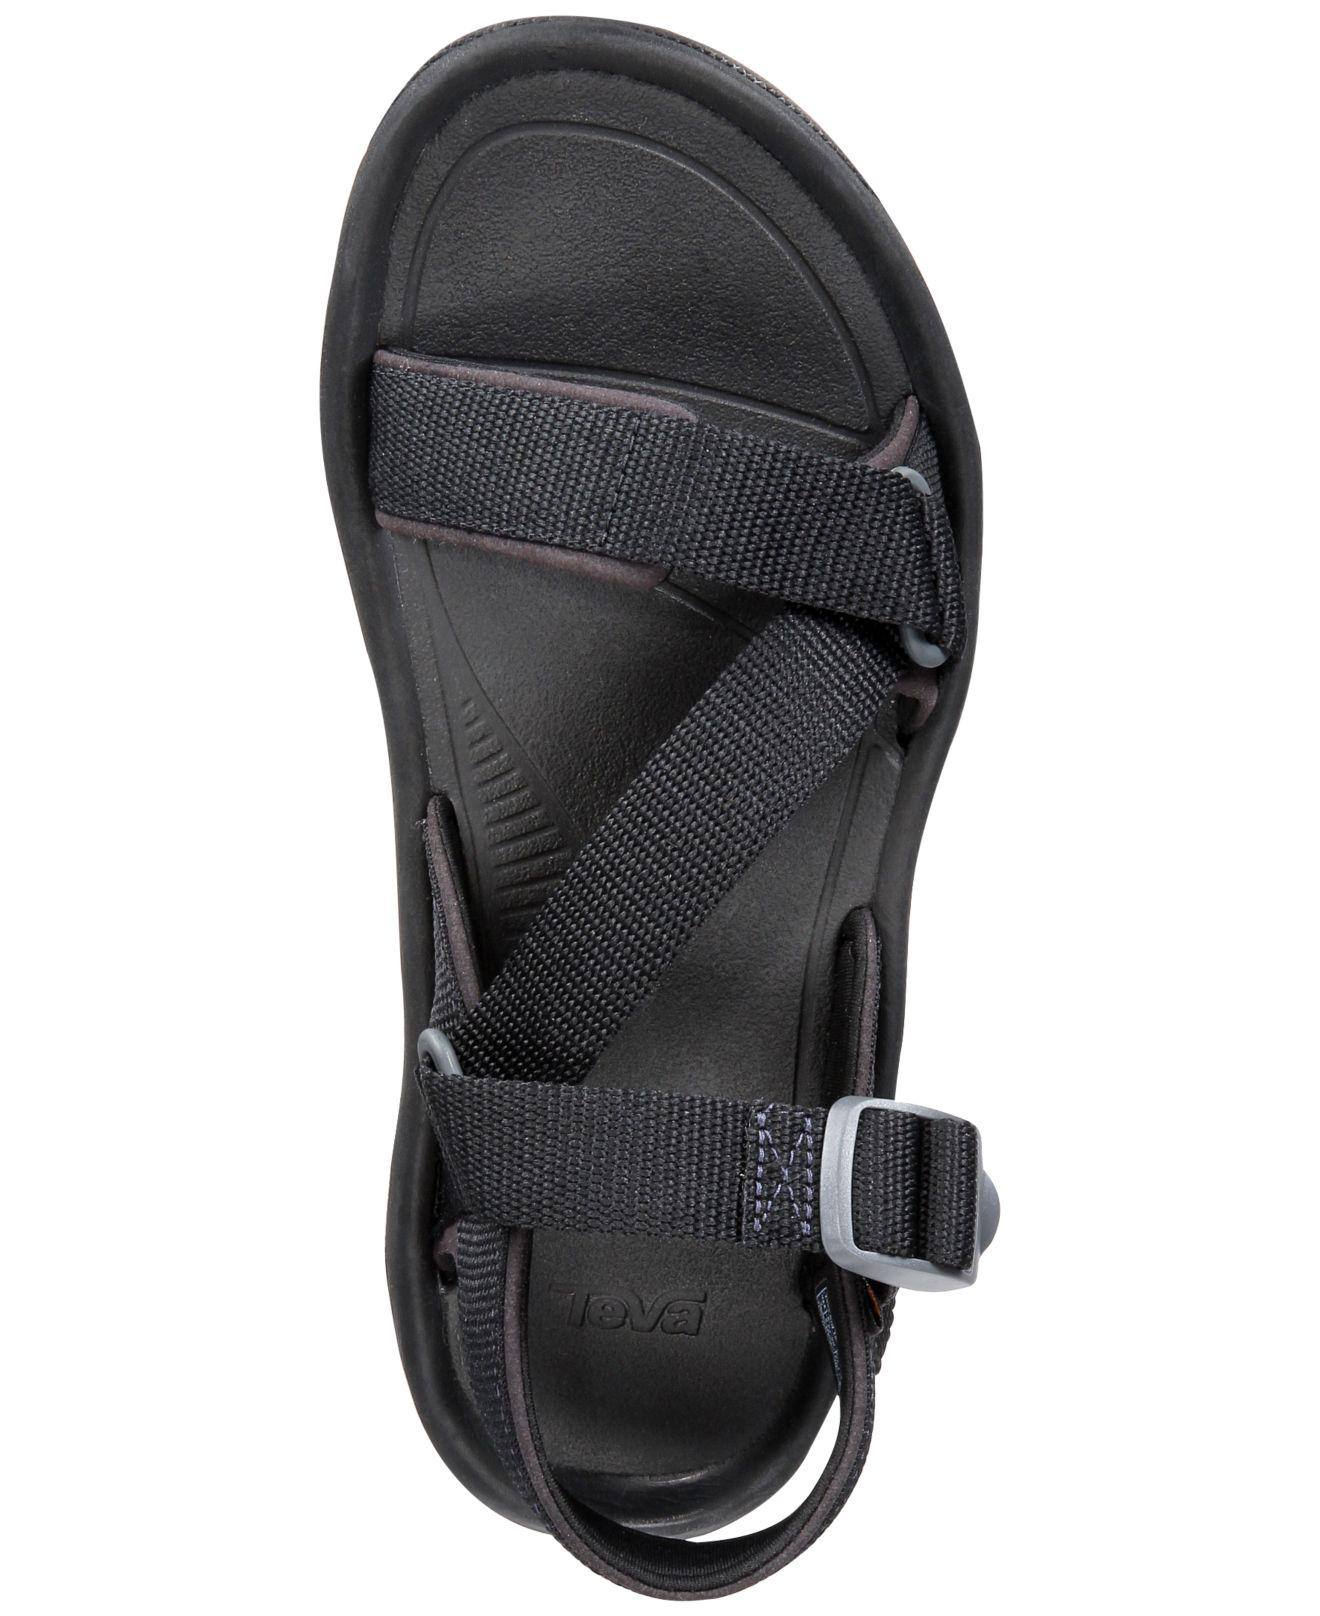 dee5b3d7cc7b Teva - Black Hurricane Xlt2 Cross-strap Water-resistant Sandals - Lyst.  View fullscreen